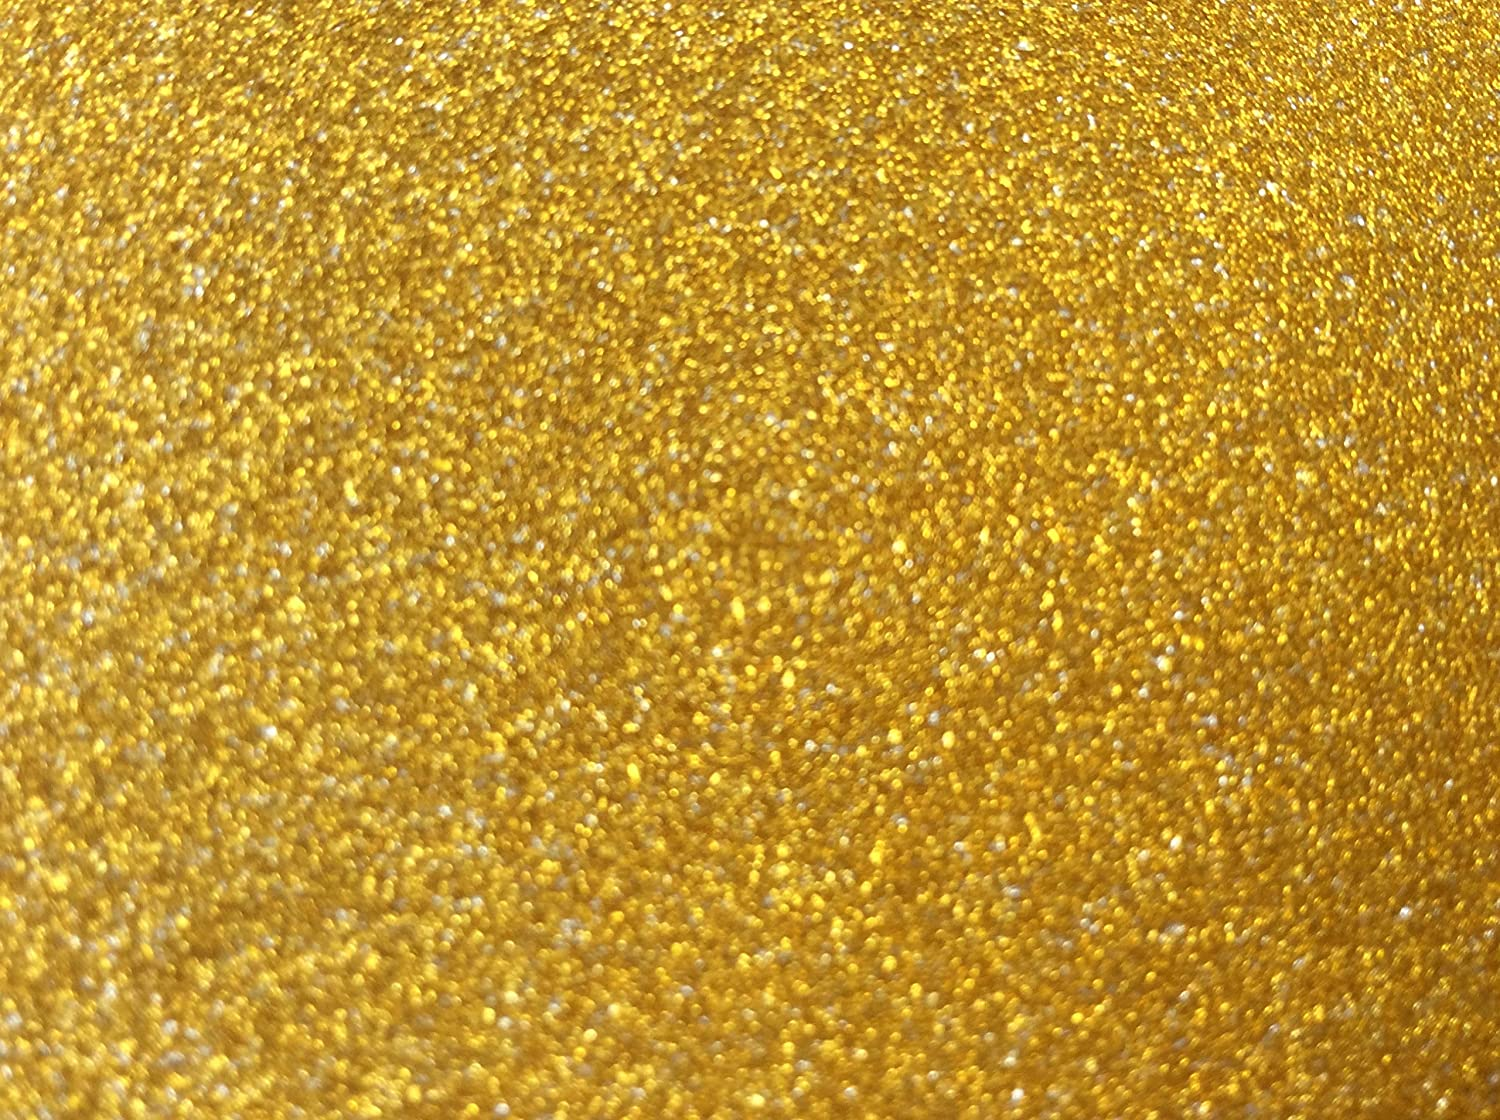 longshine-us10 Sheets 12 x 8 Premium Soft Touch Glitter Cardstock 250gms Sparkling Card DIY Craft for Party Wedding Decoration Glitter Cardstock Cardmaker Assorted Colors Gold